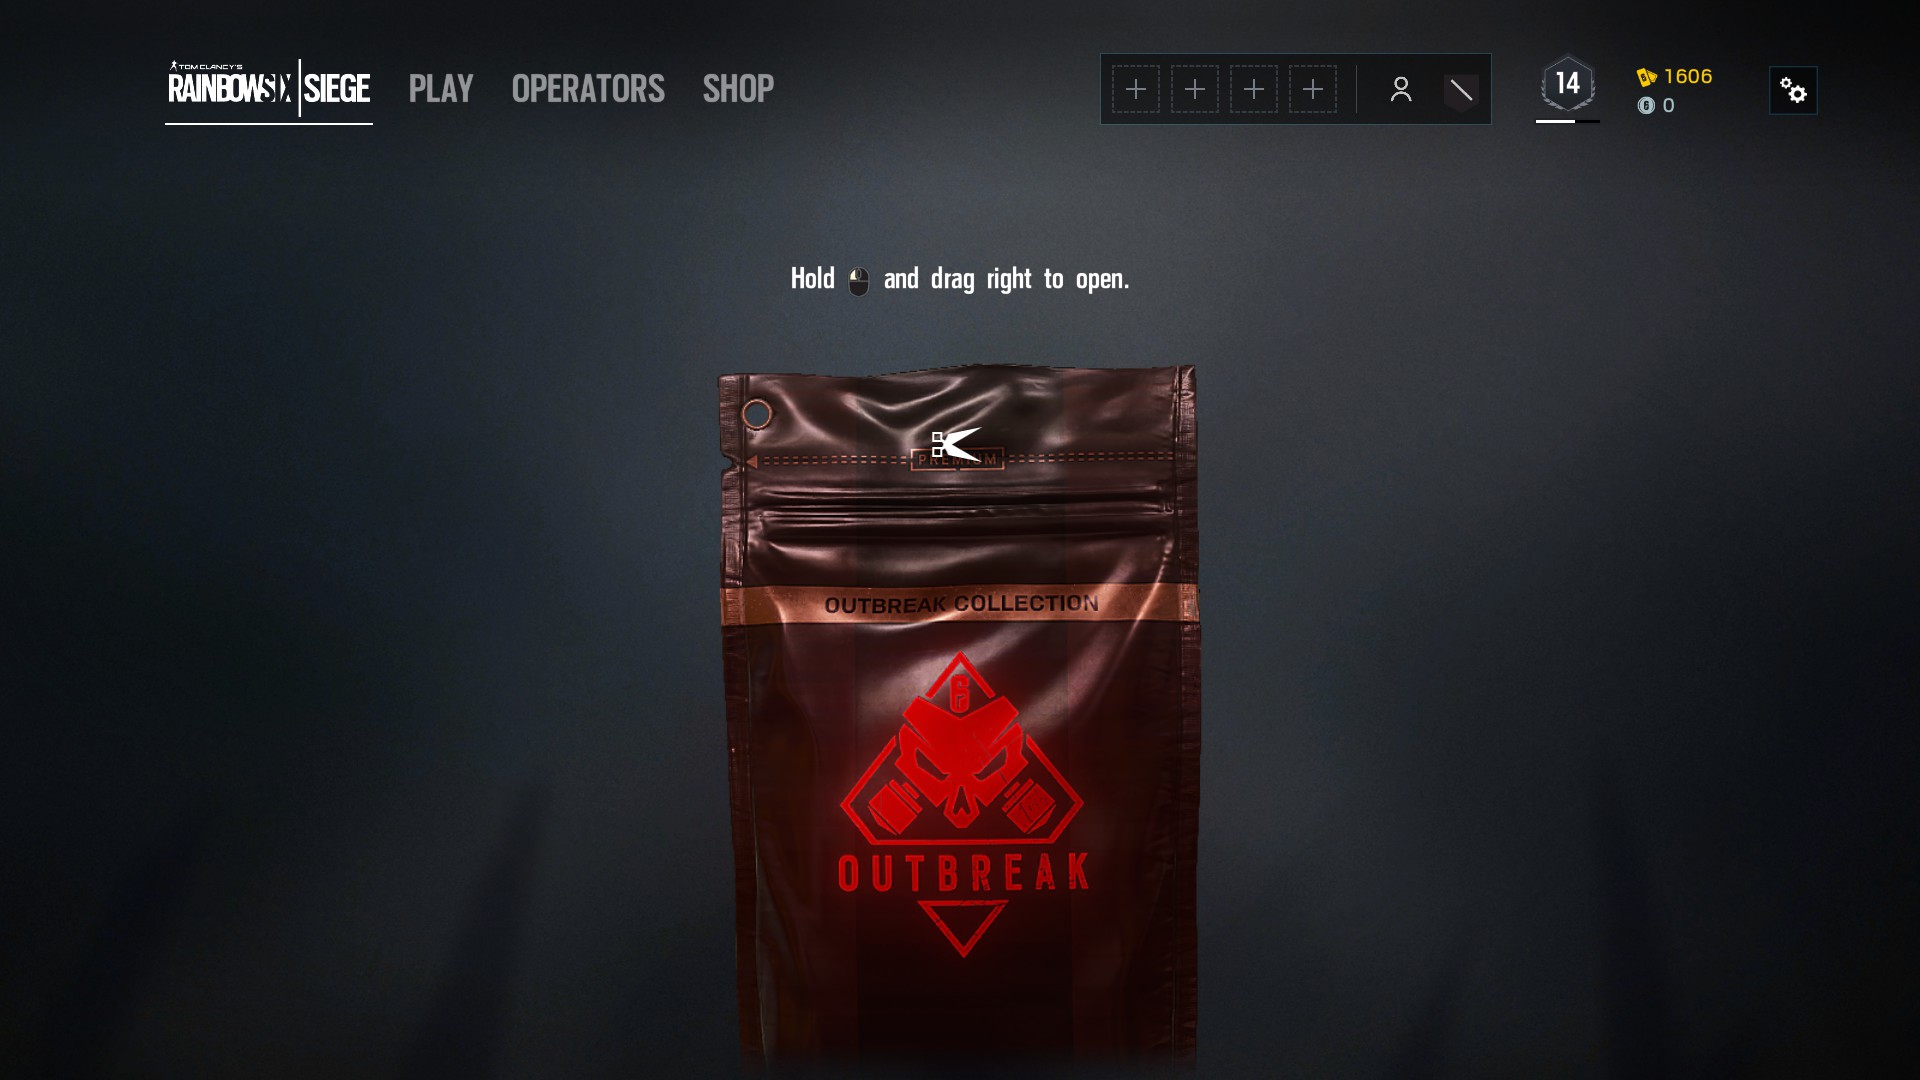 How to Get Outbreak Packs